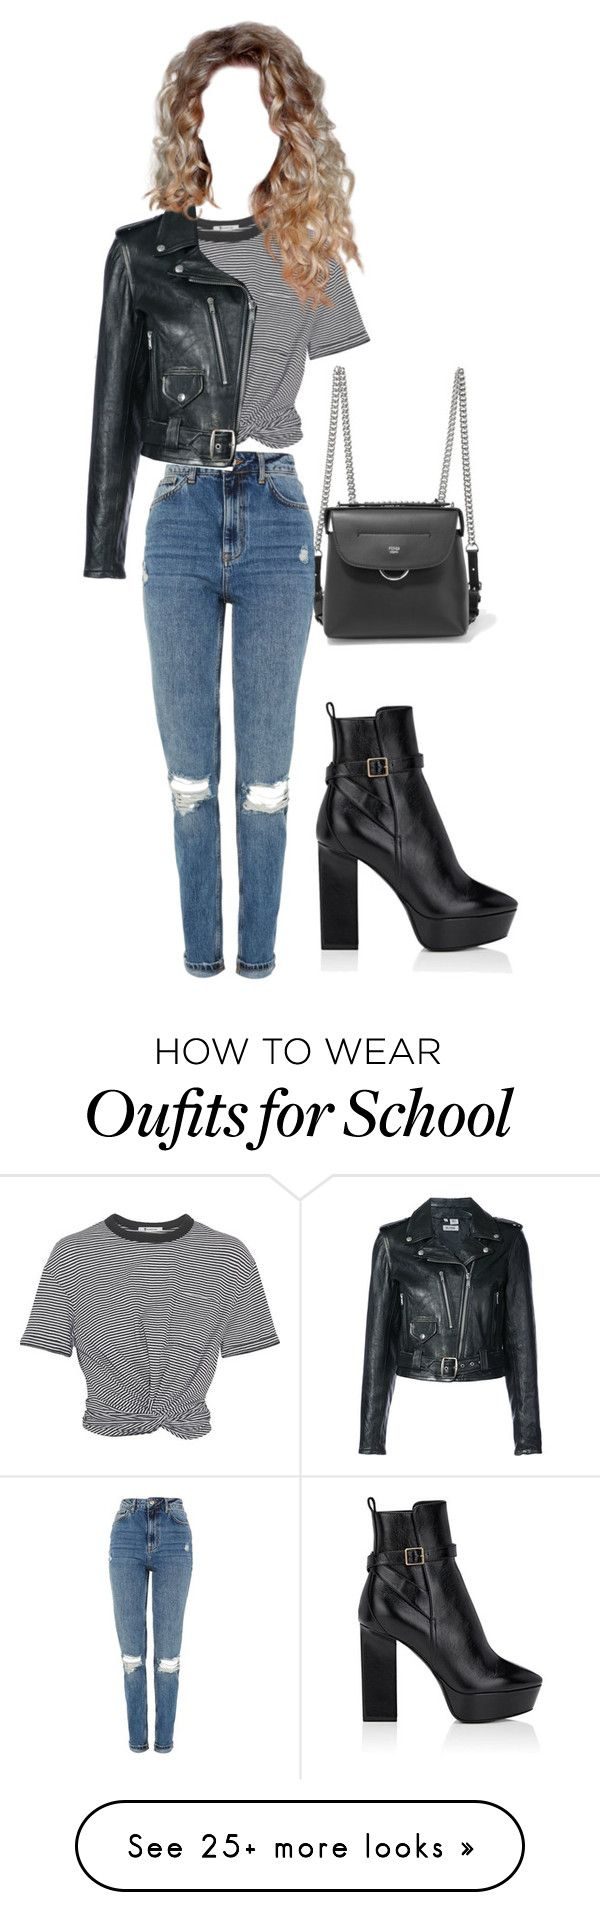 """""""a wild biking night"""" by odette-queen on Polyvore featuring Fendi, T By Alexander Wang, Yves Saint Laurent, Topshop and RE/DONE"""